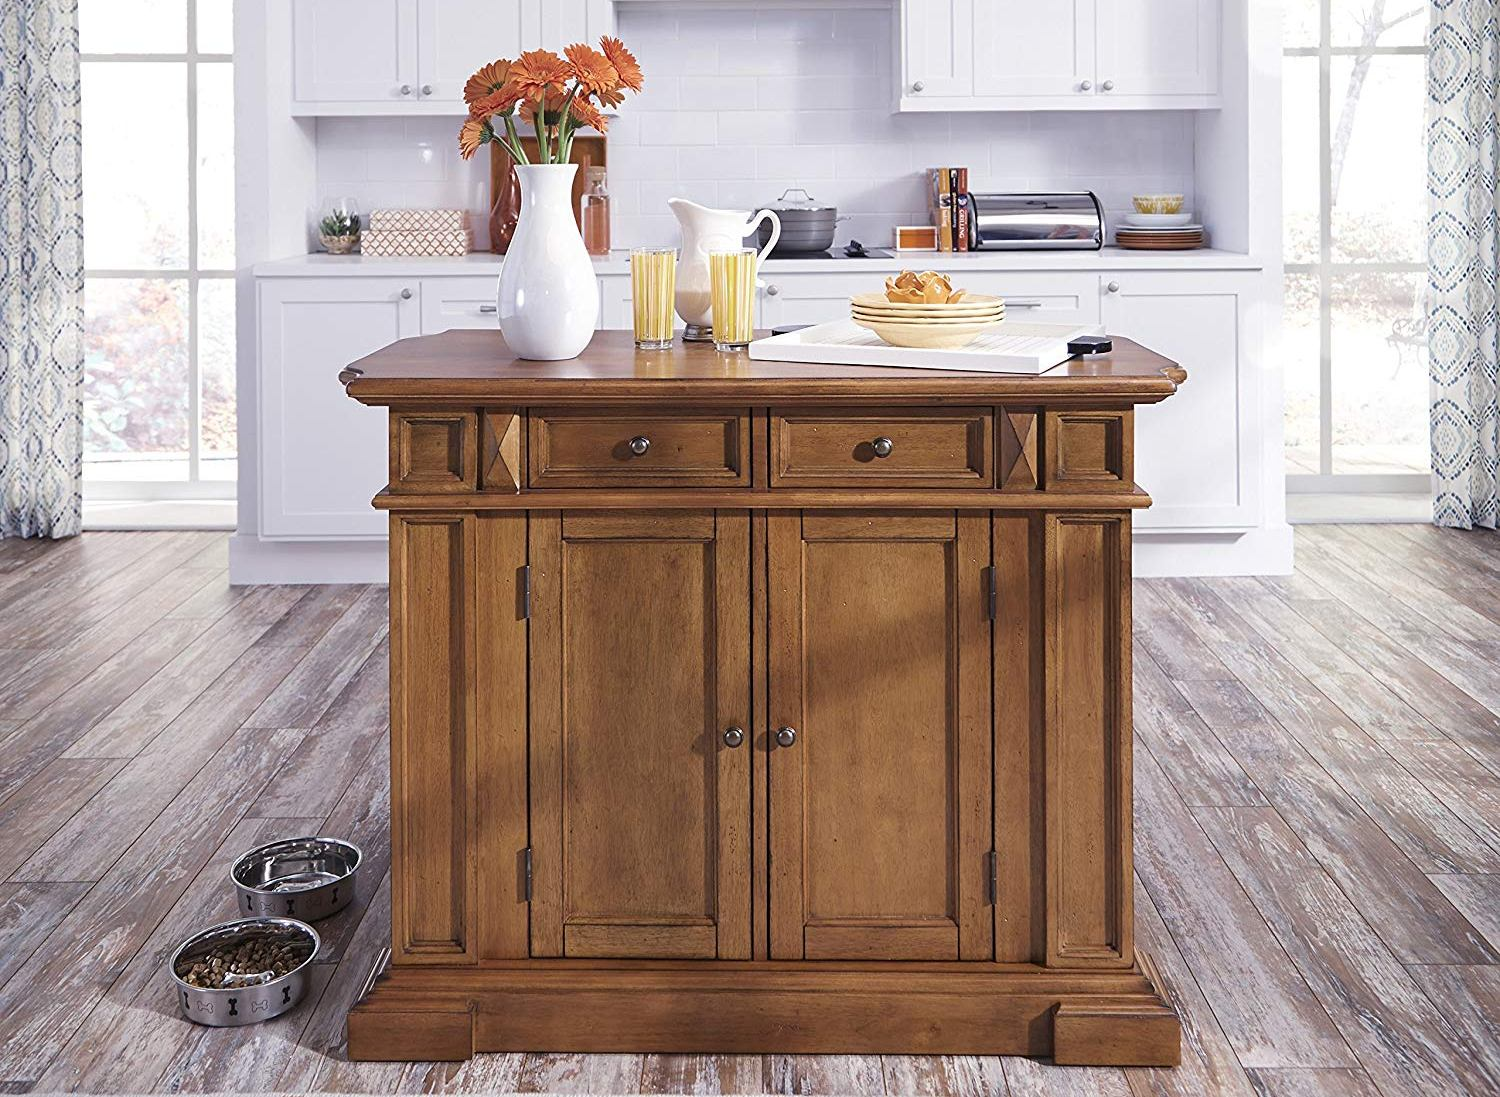 5 Best Kitchen Islands in 2020 - Top Rated Kitchen Carts ...